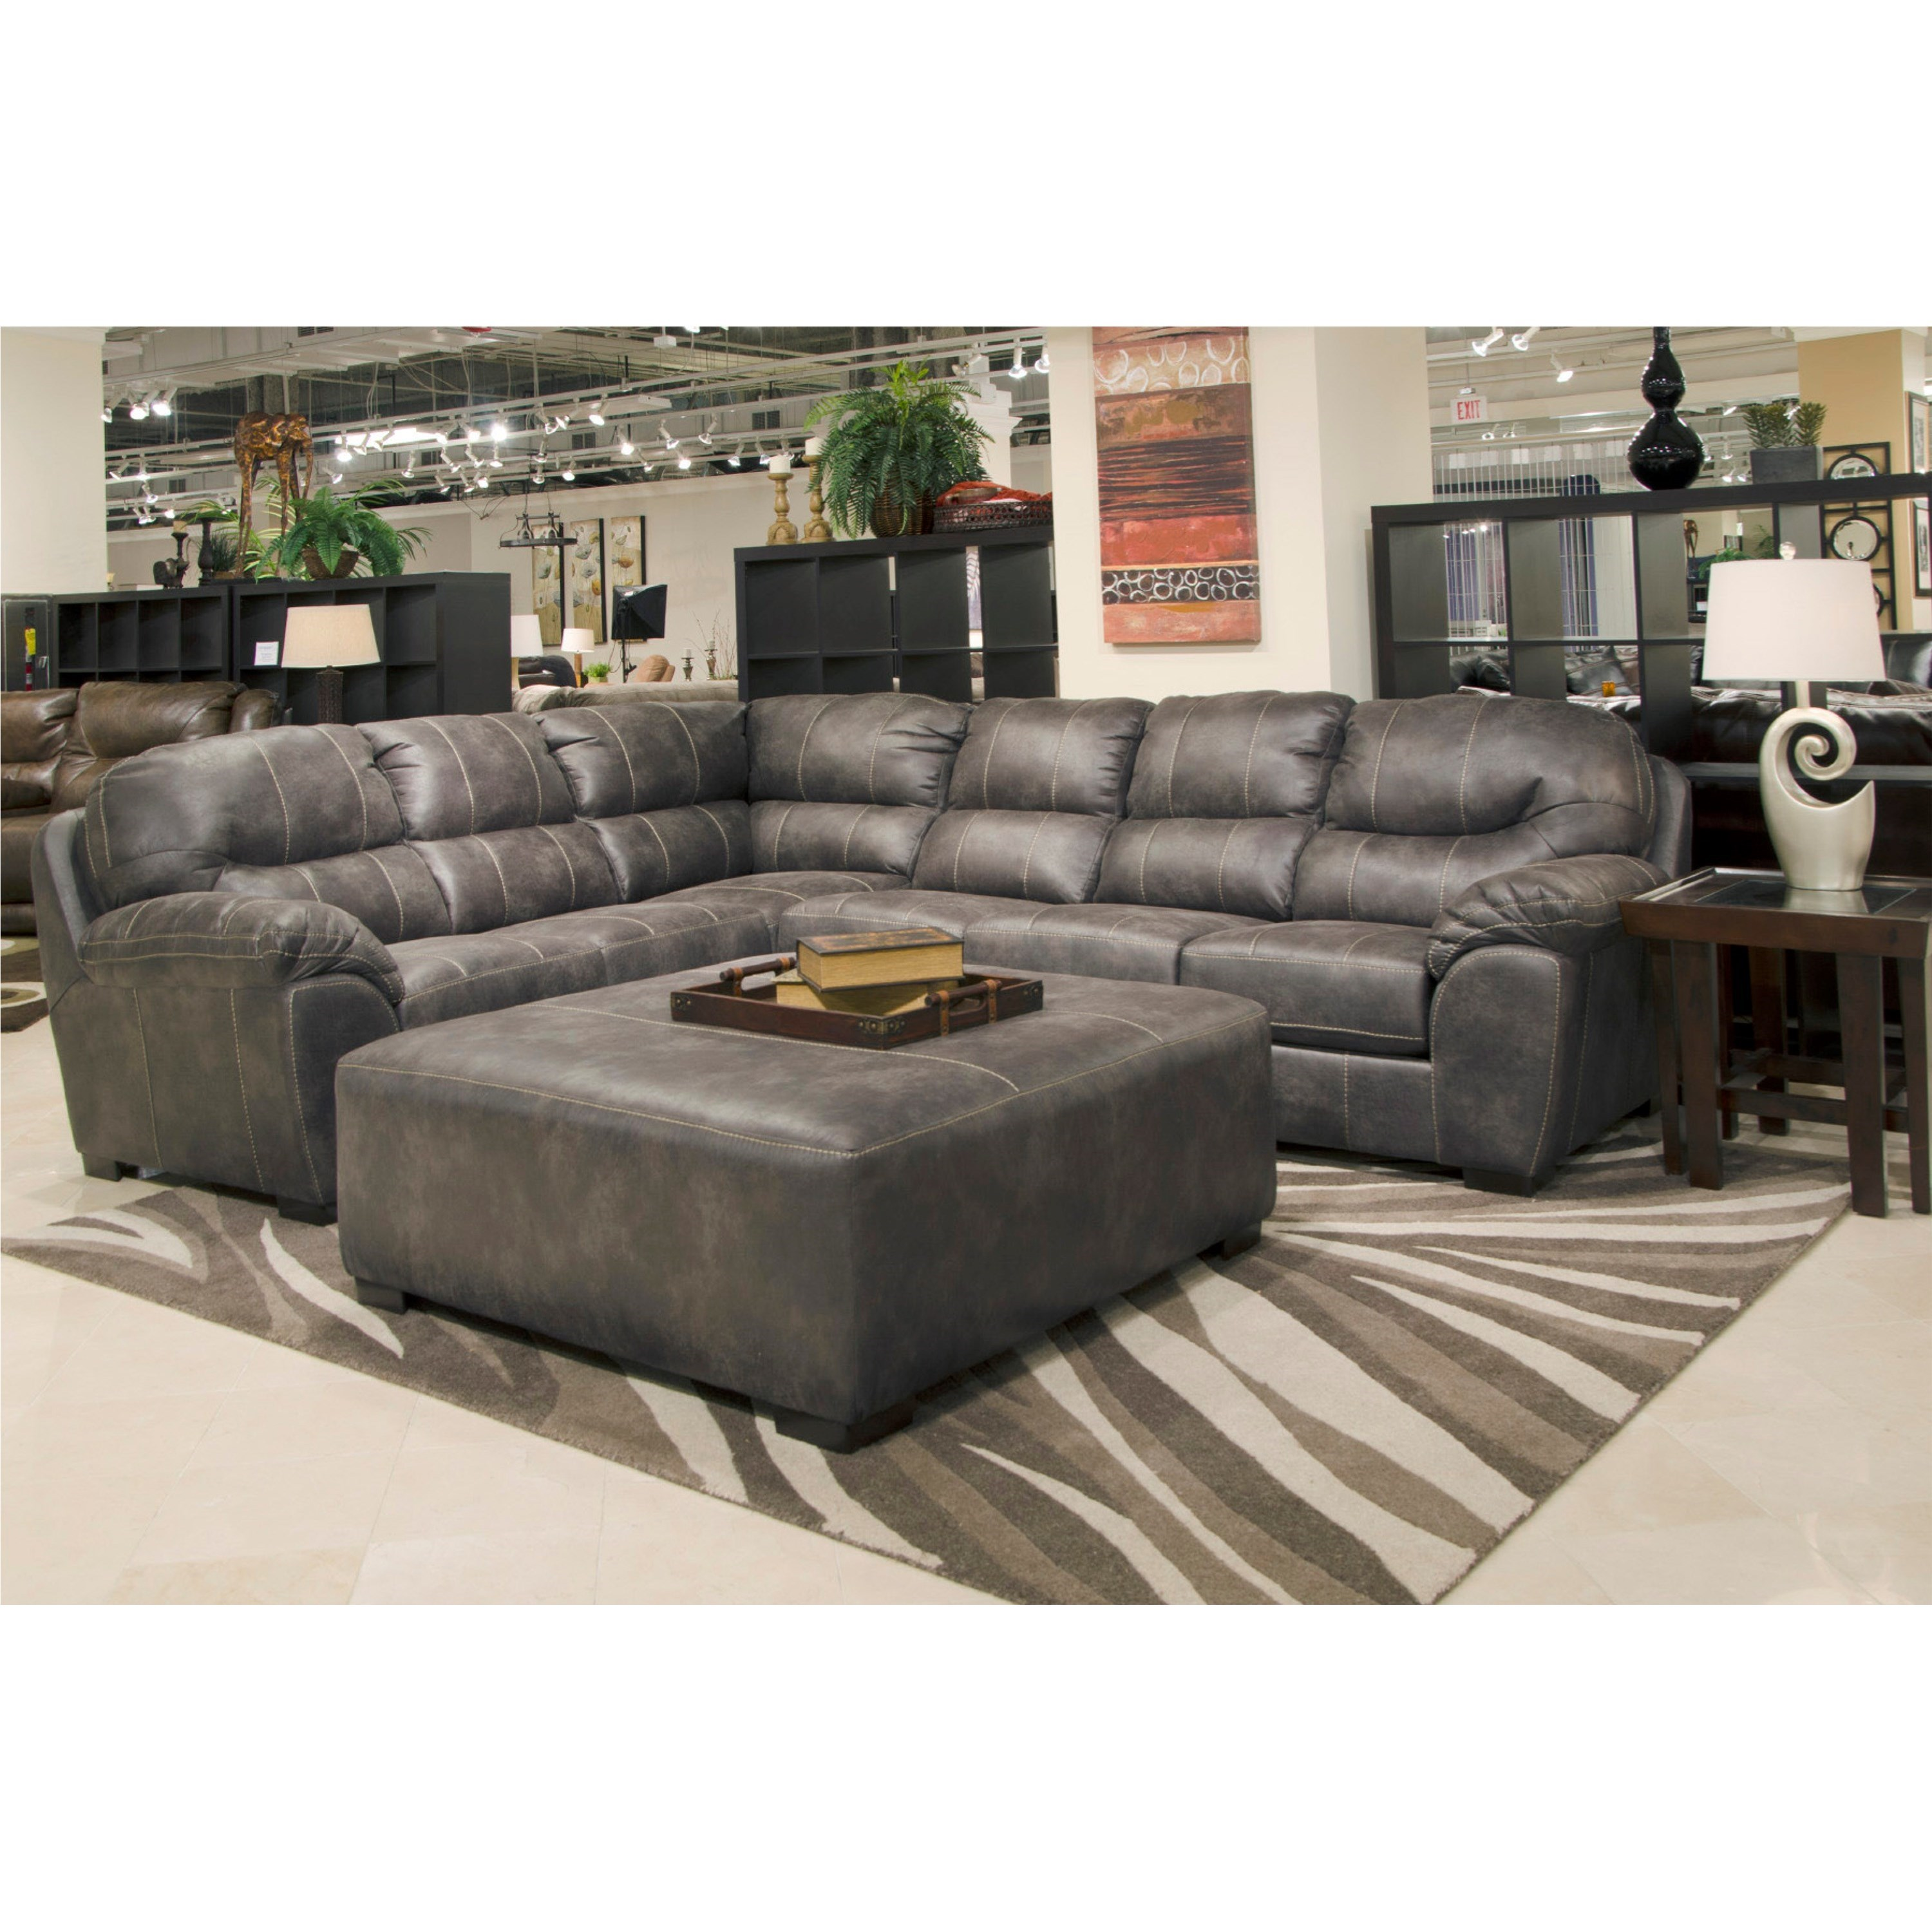 Jackson Furniture Grant Sectional Sofa Gill Brothers Furniture Sectional Sofas